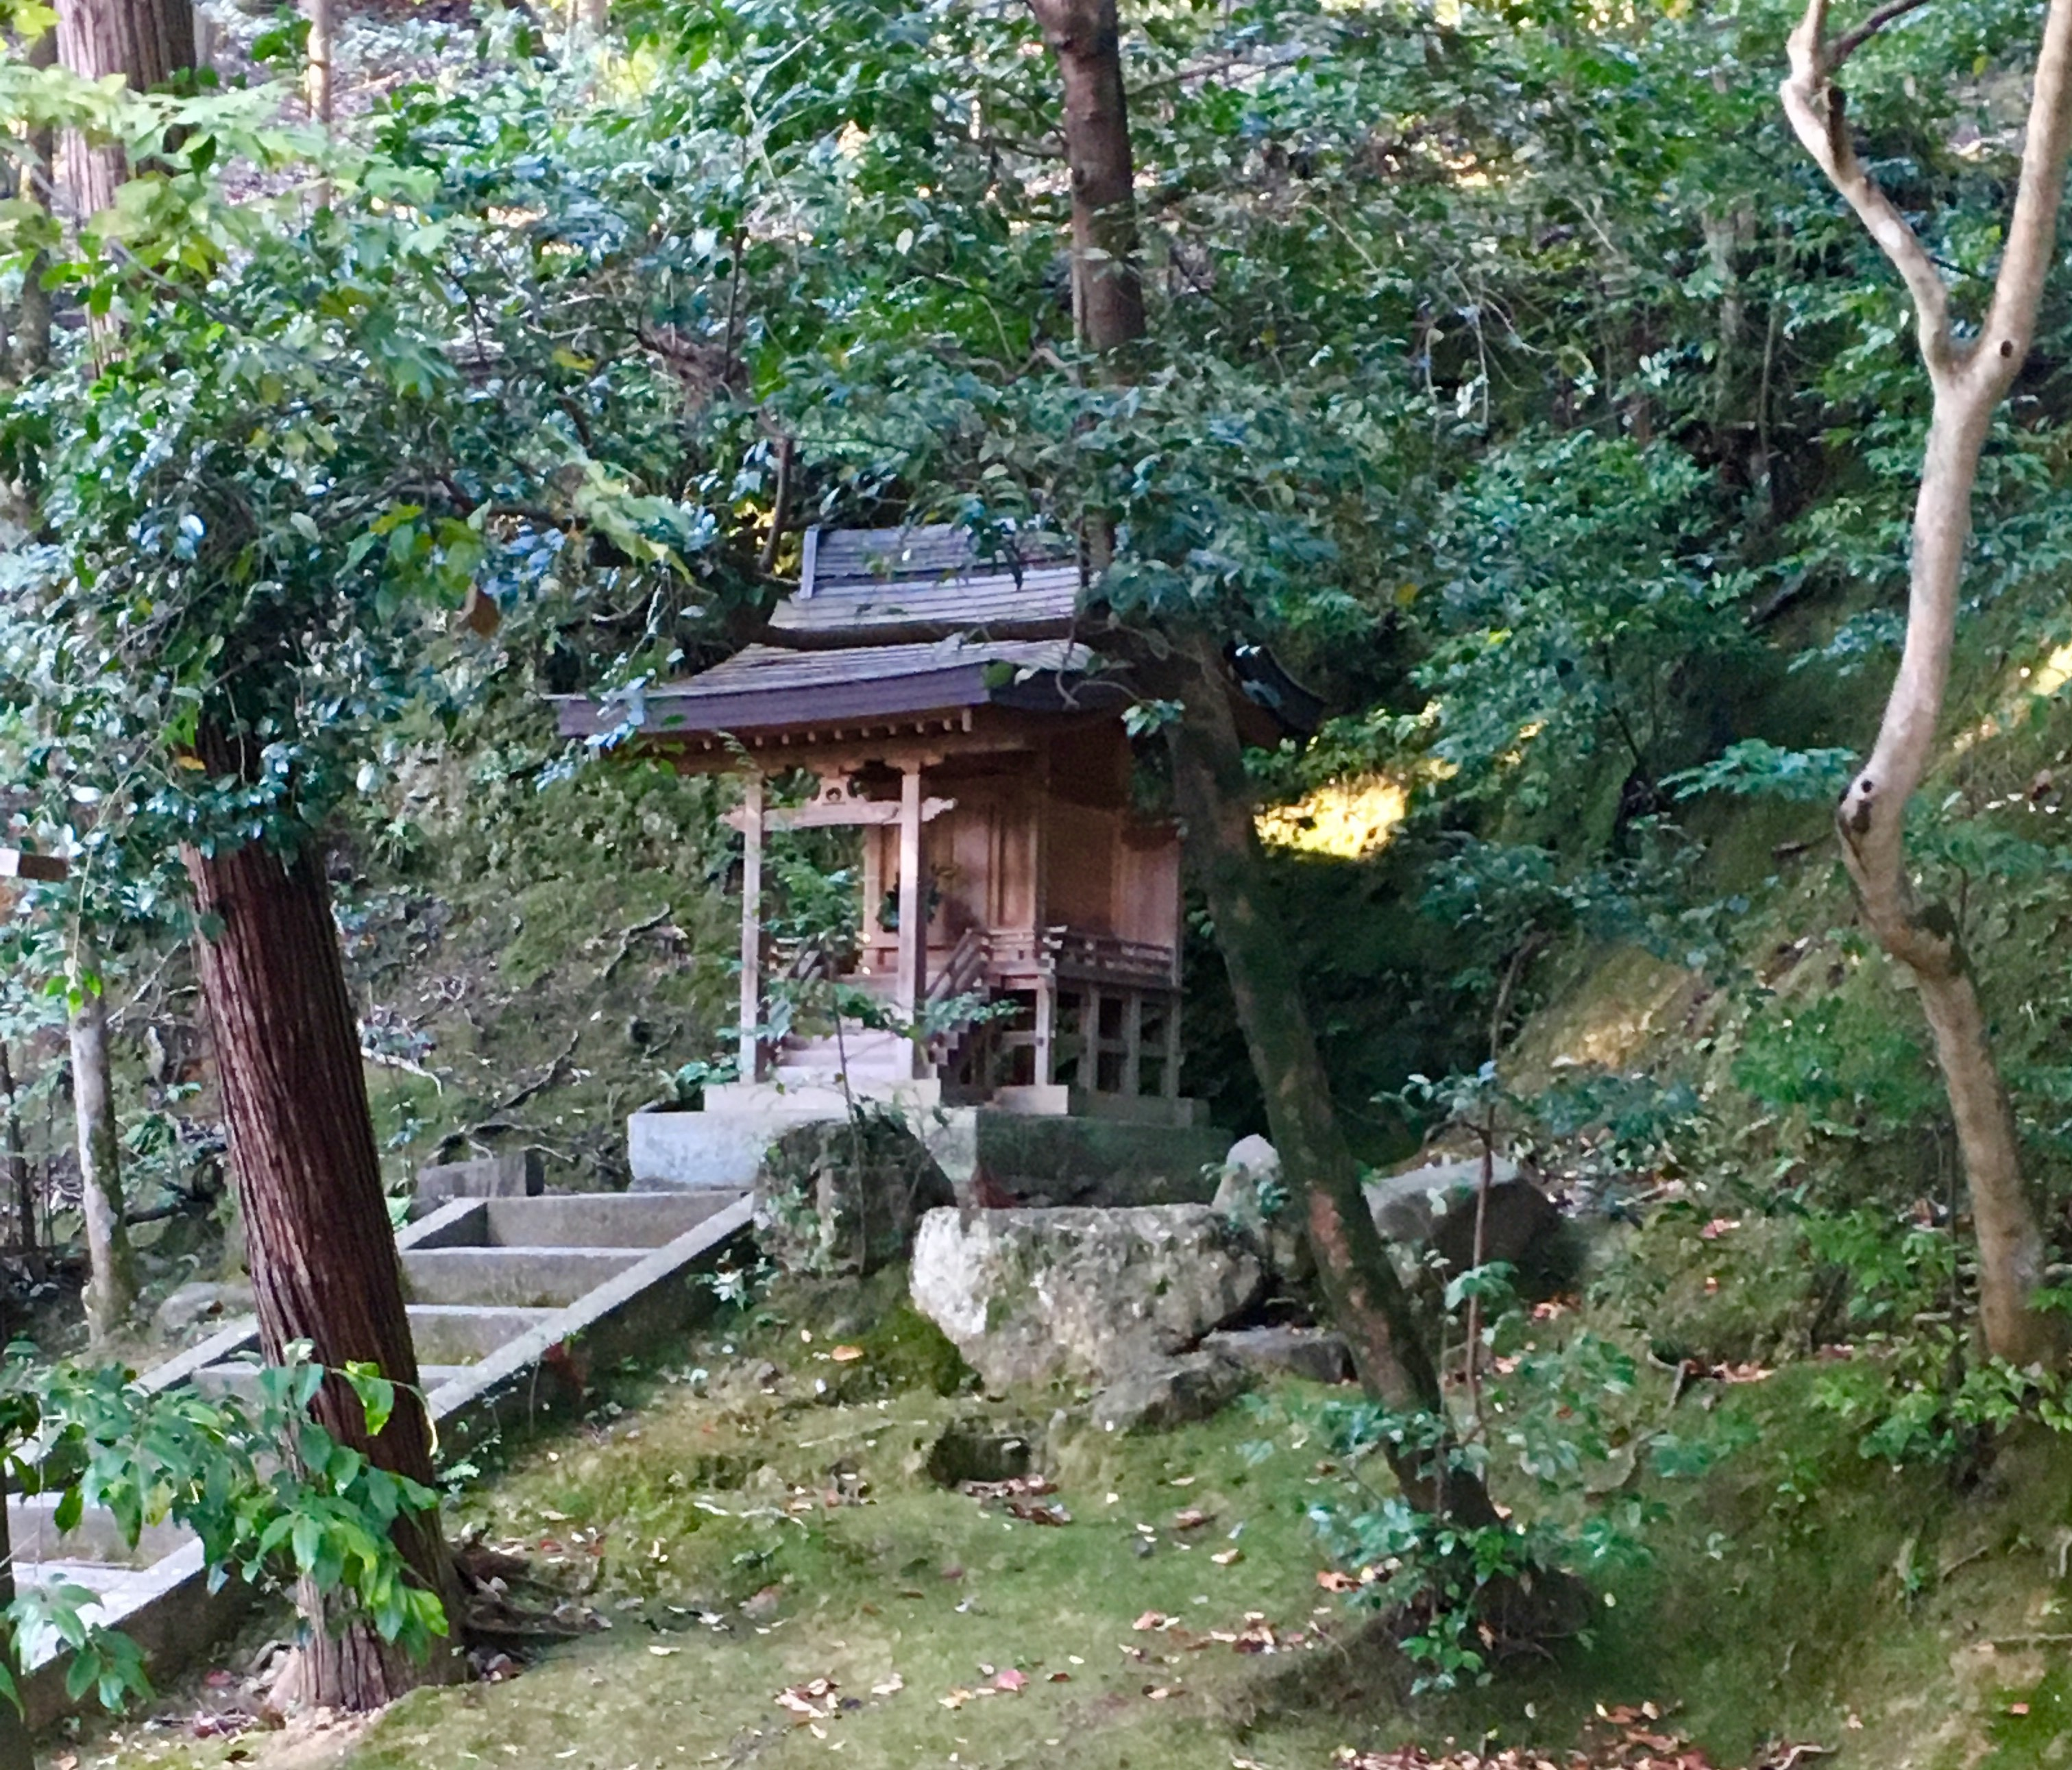 small Japanese shrine against trees and moss